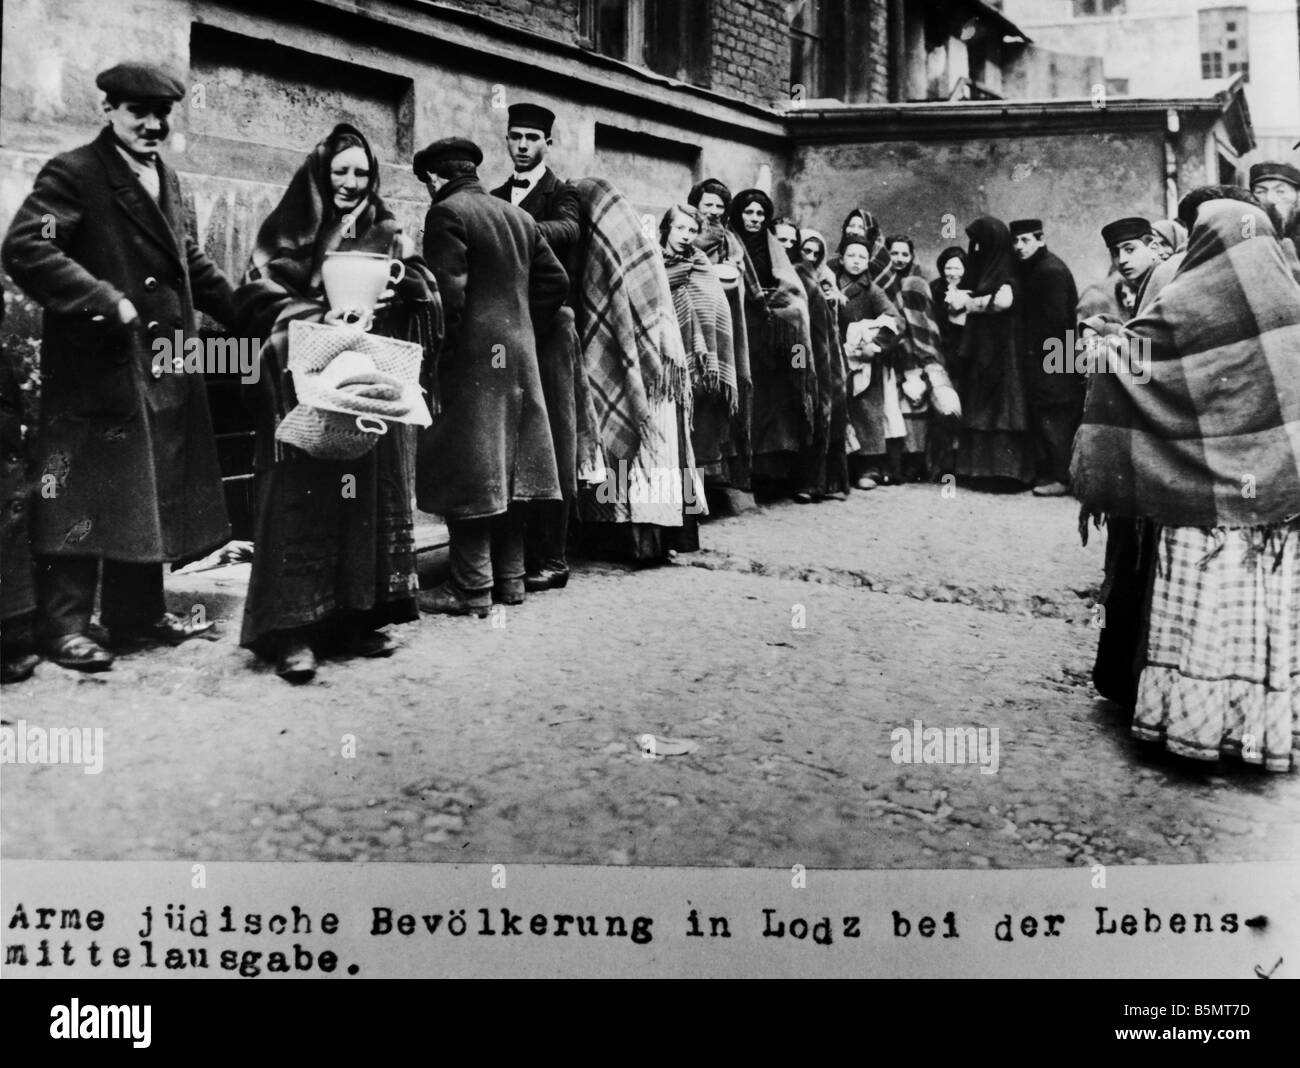 9IS 1915 0 0 A1 35 Jewish people in Lodz 1915 History of Judaism Eastern Jews Poor Jewish people in Lodz receiving - Stock Image